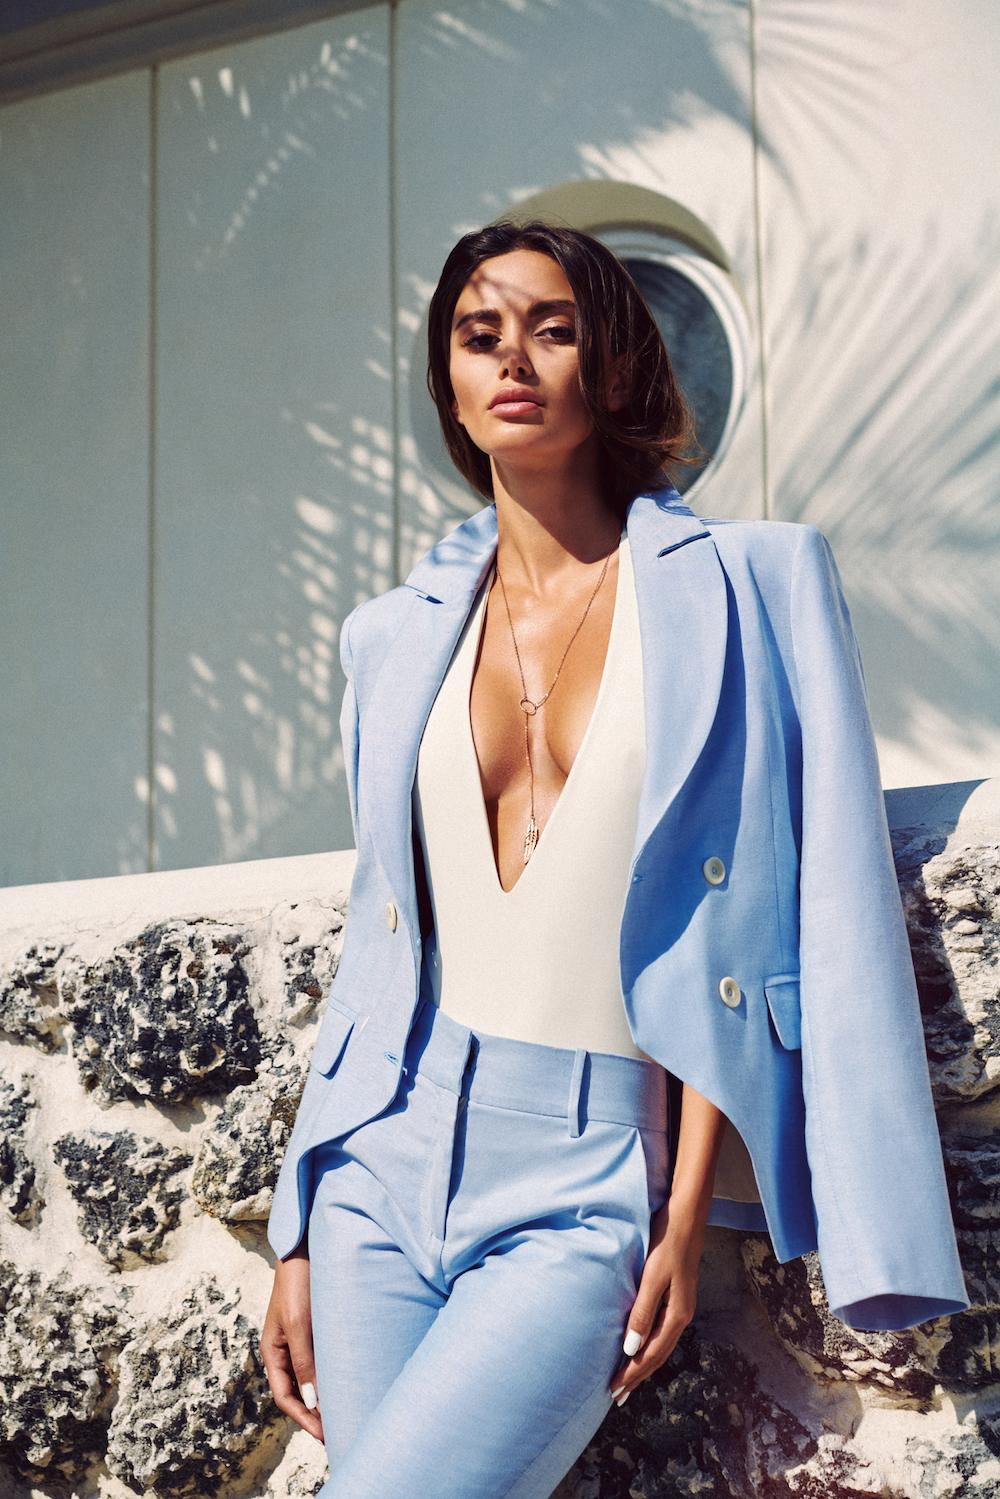 Blue classic elegant women's suit. Business outfit for spring-summer season